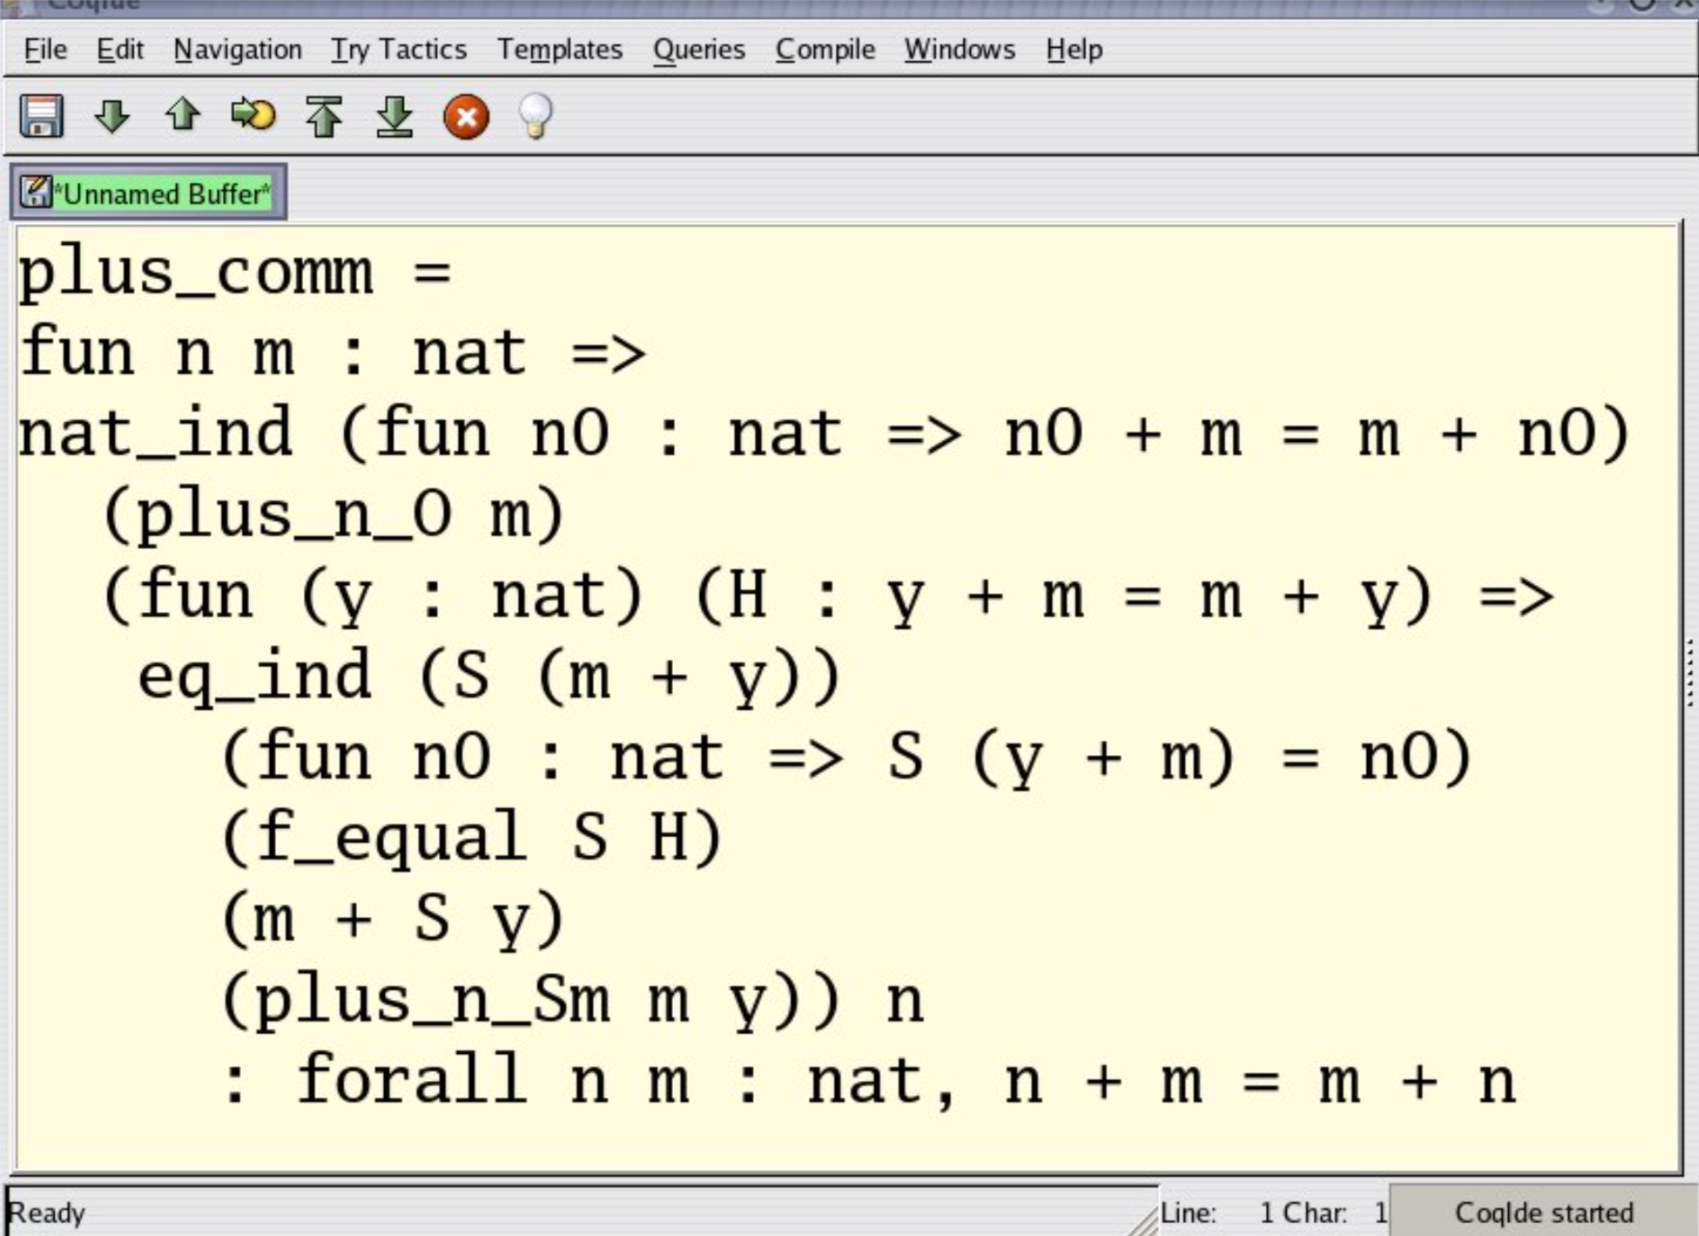 A proof written as a functional program: the proof of commutativity of addition on natural numbers in the proof assistant Coq. nat_ind stands for mathematical induction, eq_ind for substitution of equals and f_equal for taking the same function on both sides of the equality. Earlier theorems are referenced showing m = m + 0 and S (m + y) = m + S y.